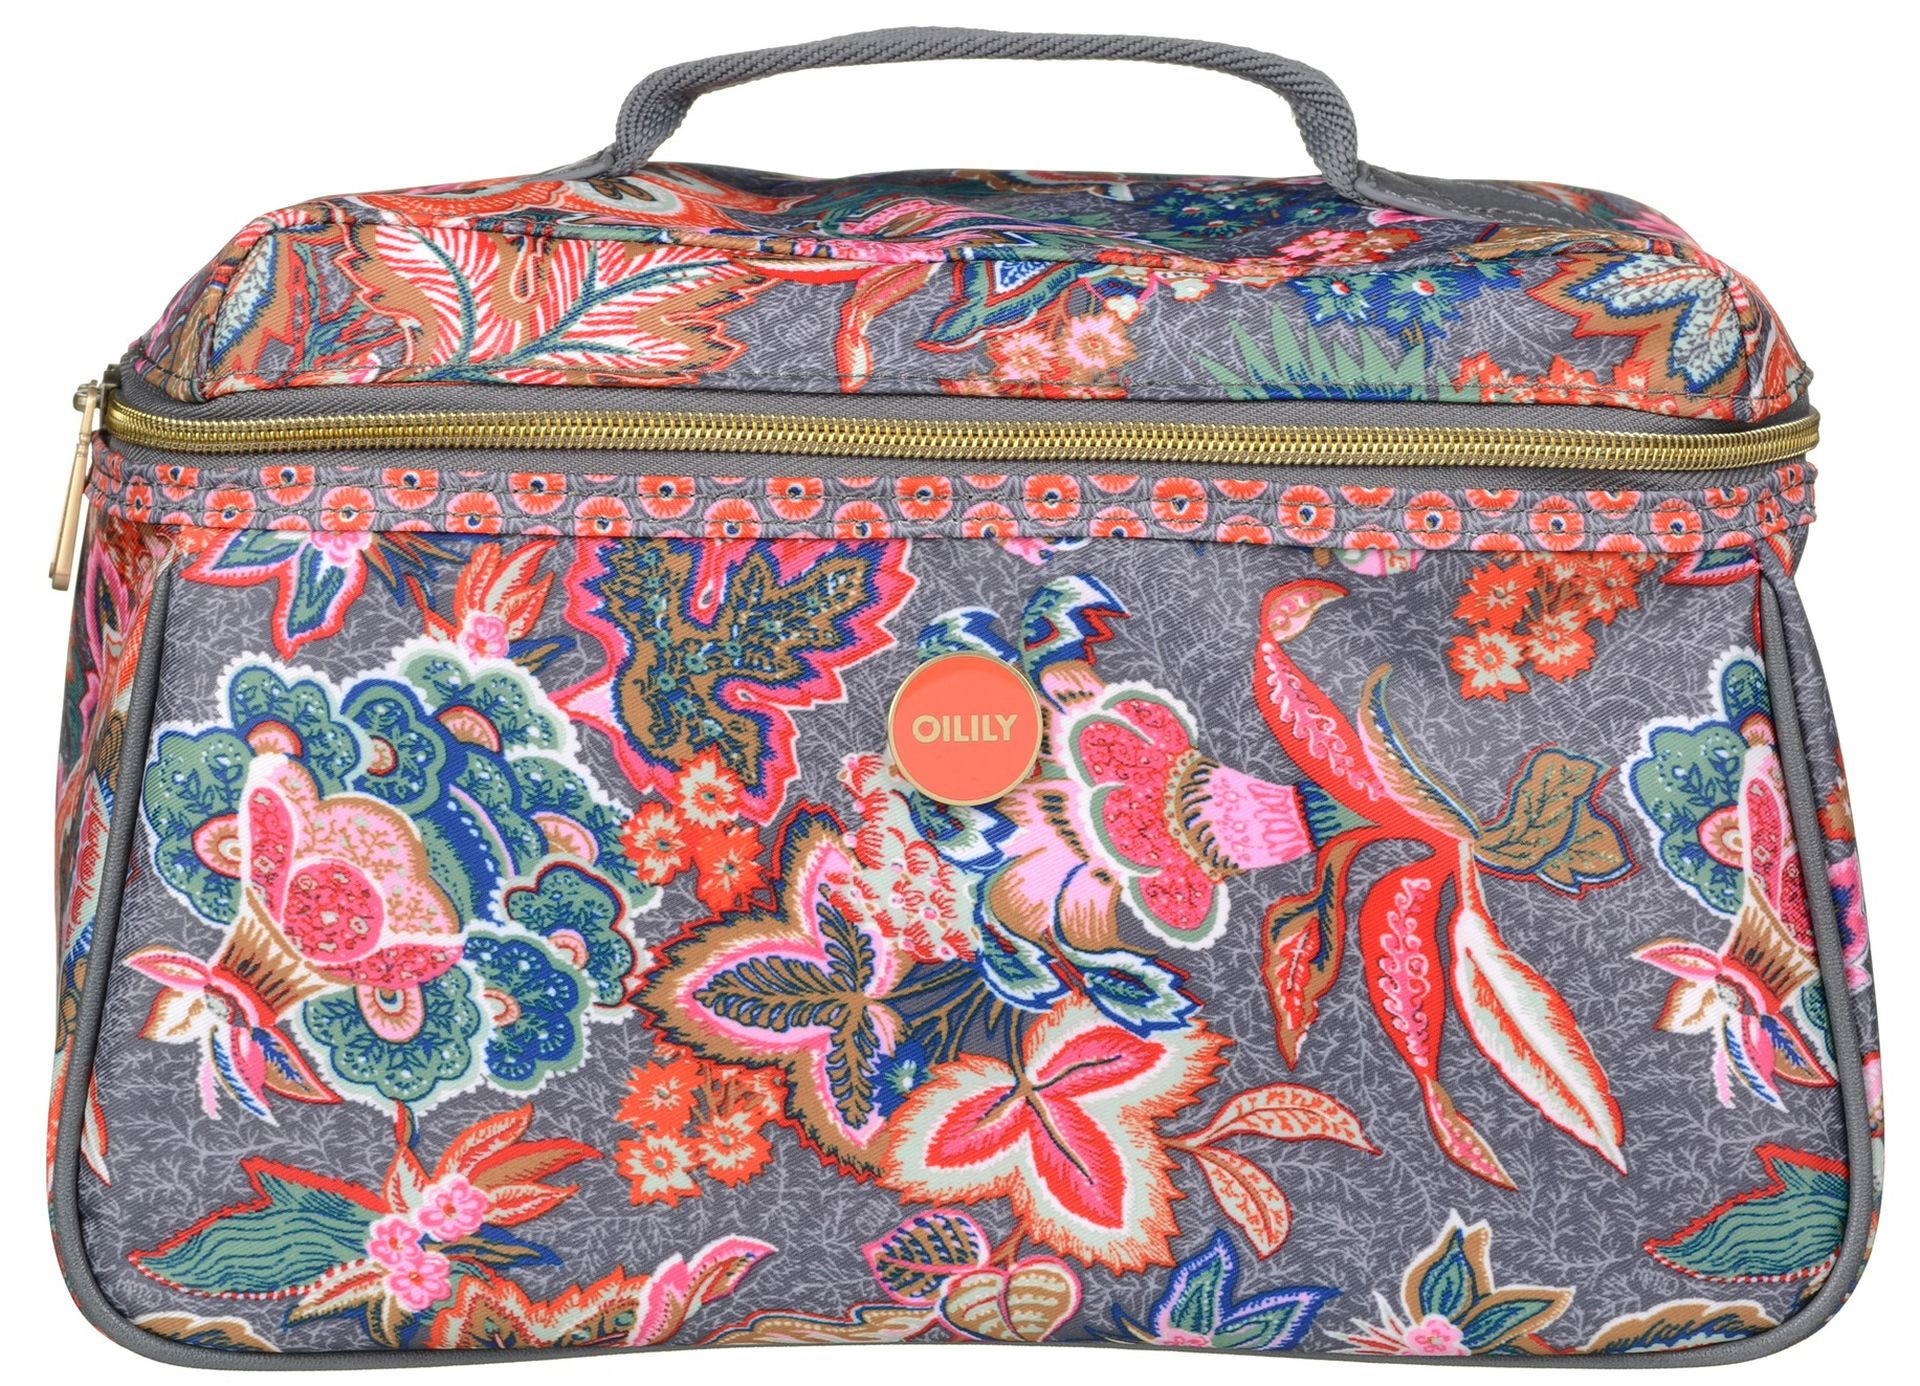 oilily jatin flowers l beauty case cosmetic bag toilet ladies grey dove ebay. Black Bedroom Furniture Sets. Home Design Ideas